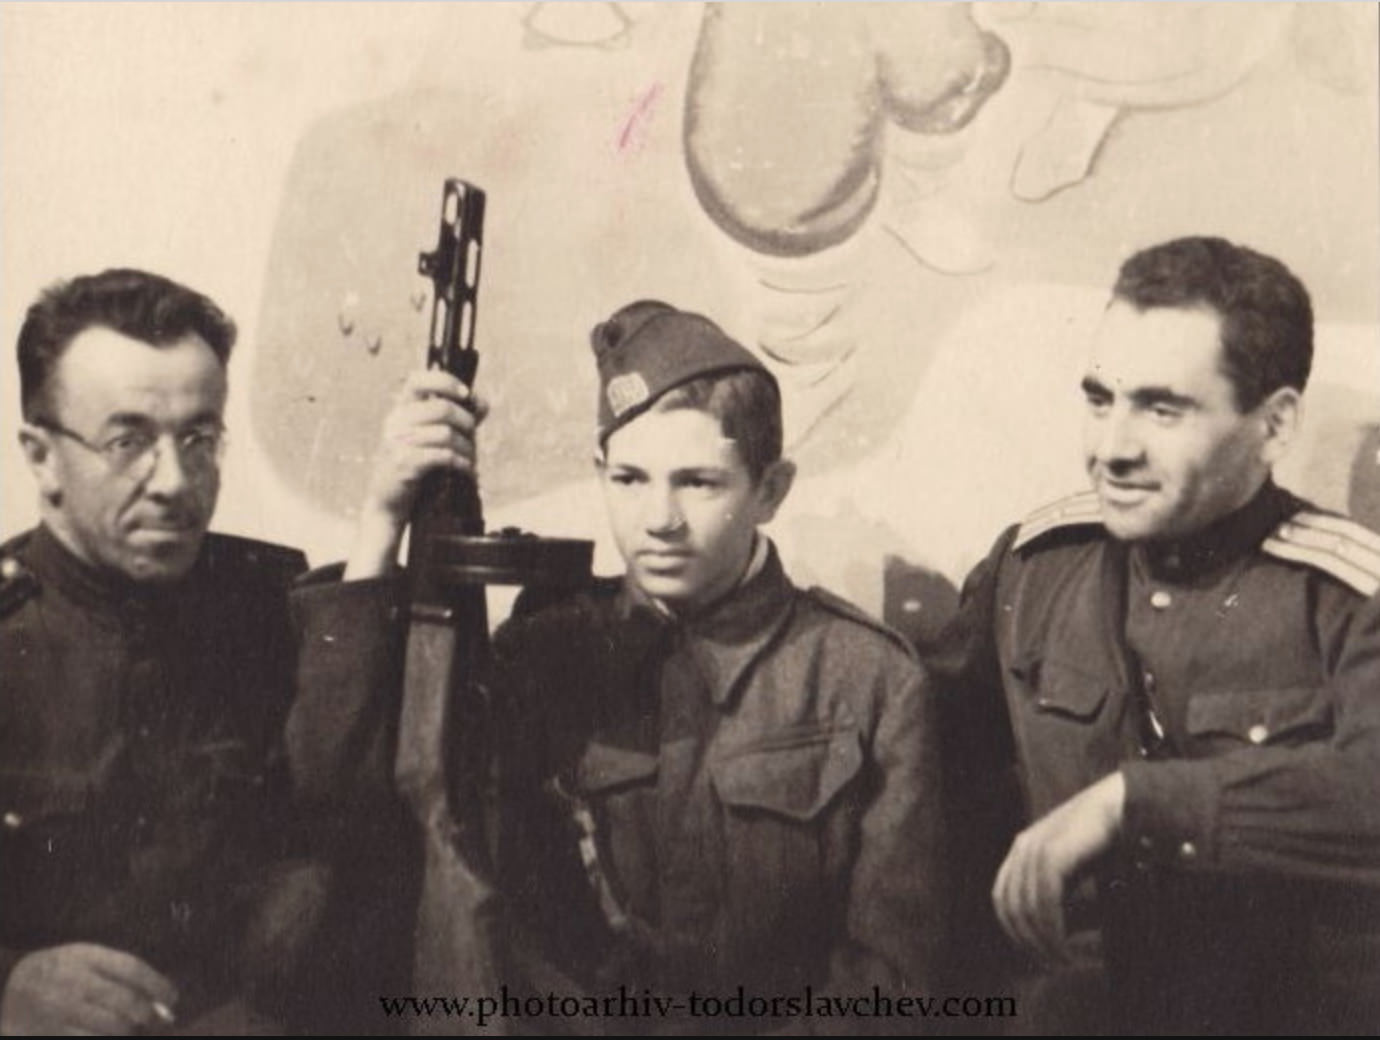 Georgi Stoilov, centre, pictured with partisan officers in 1944.